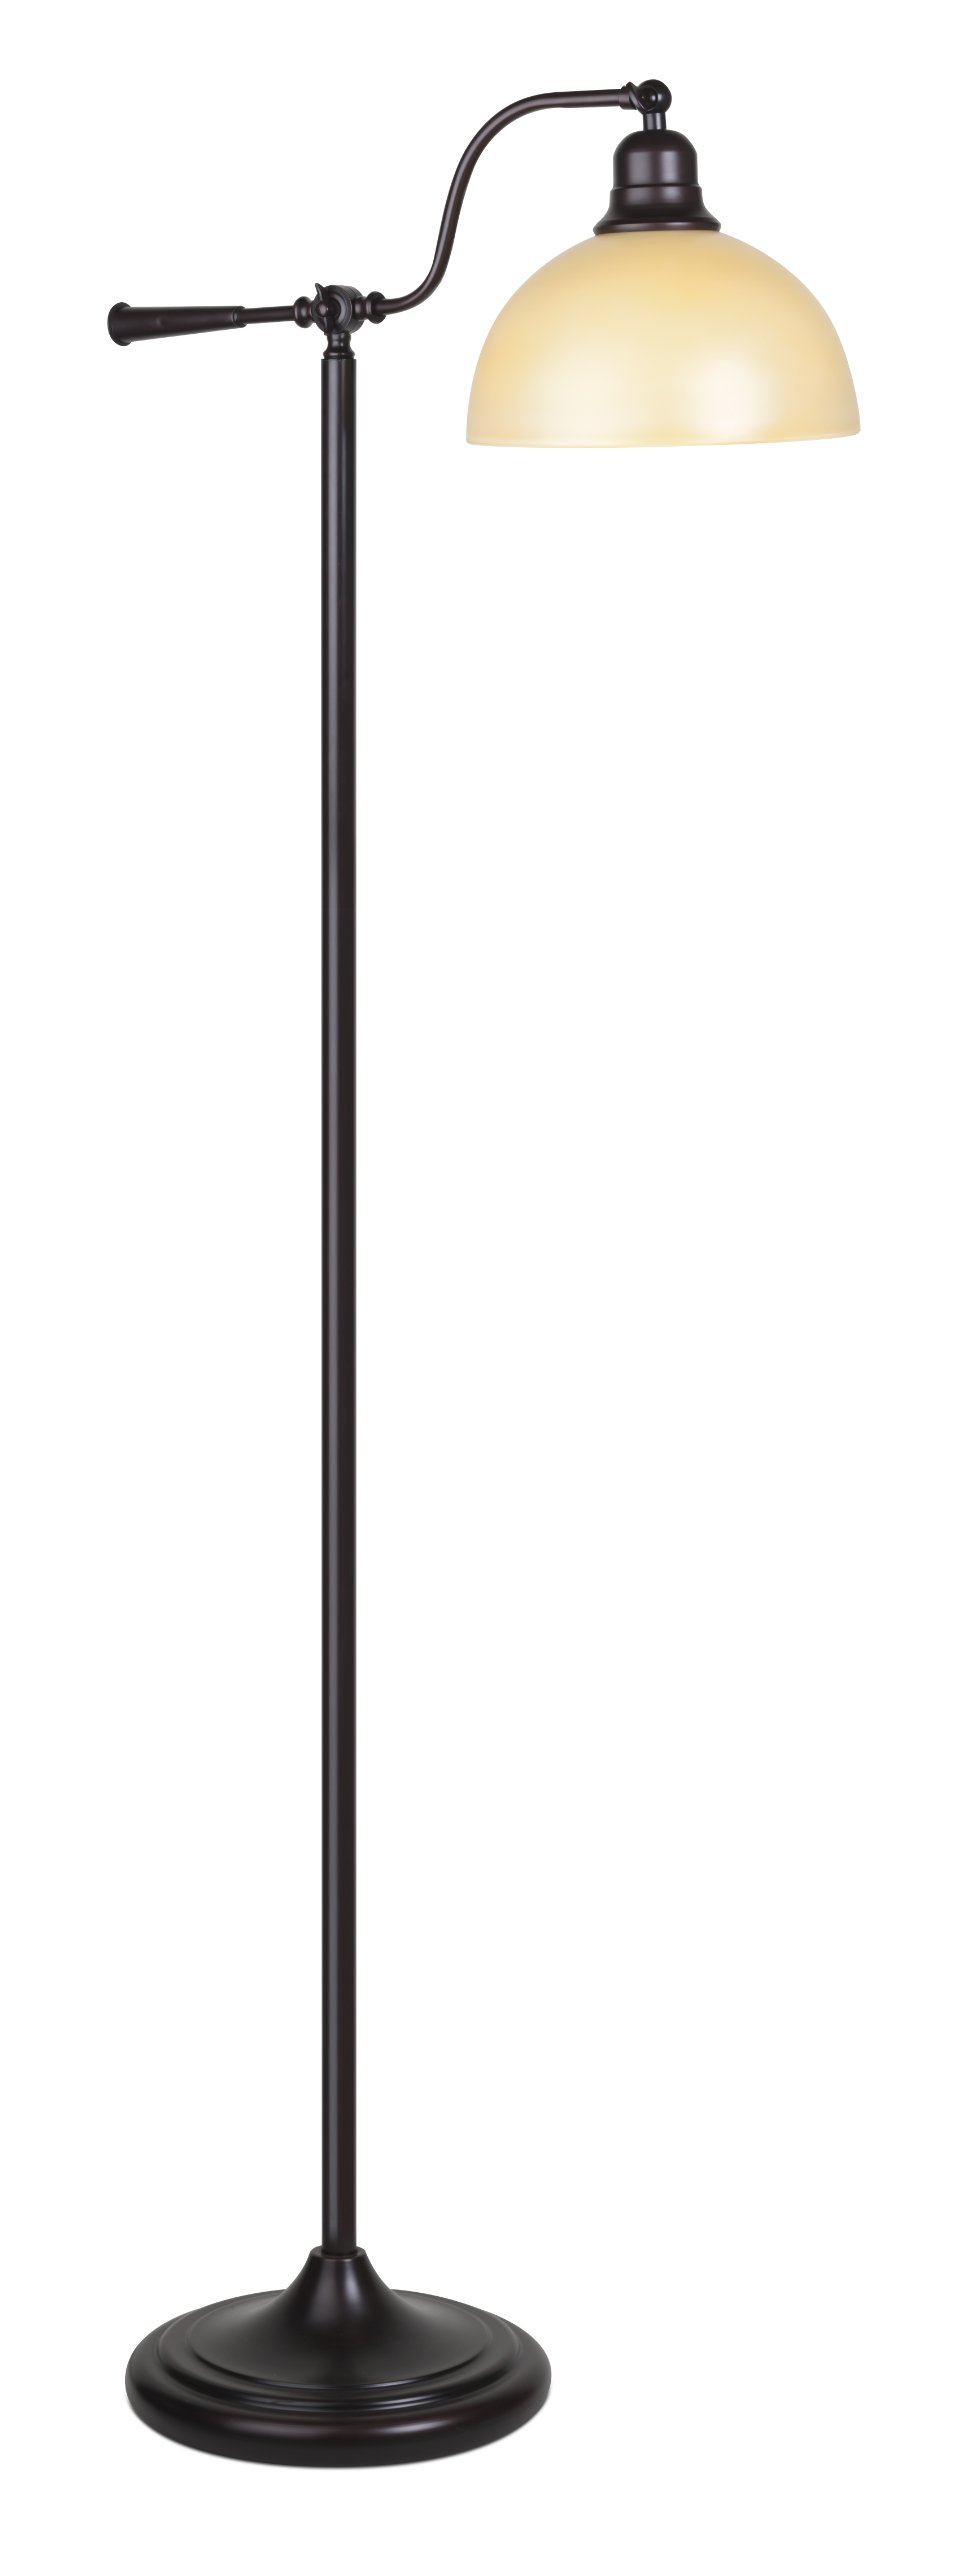 OttLite 25549BB5  25-watt HD Cambridge Floor Lamp